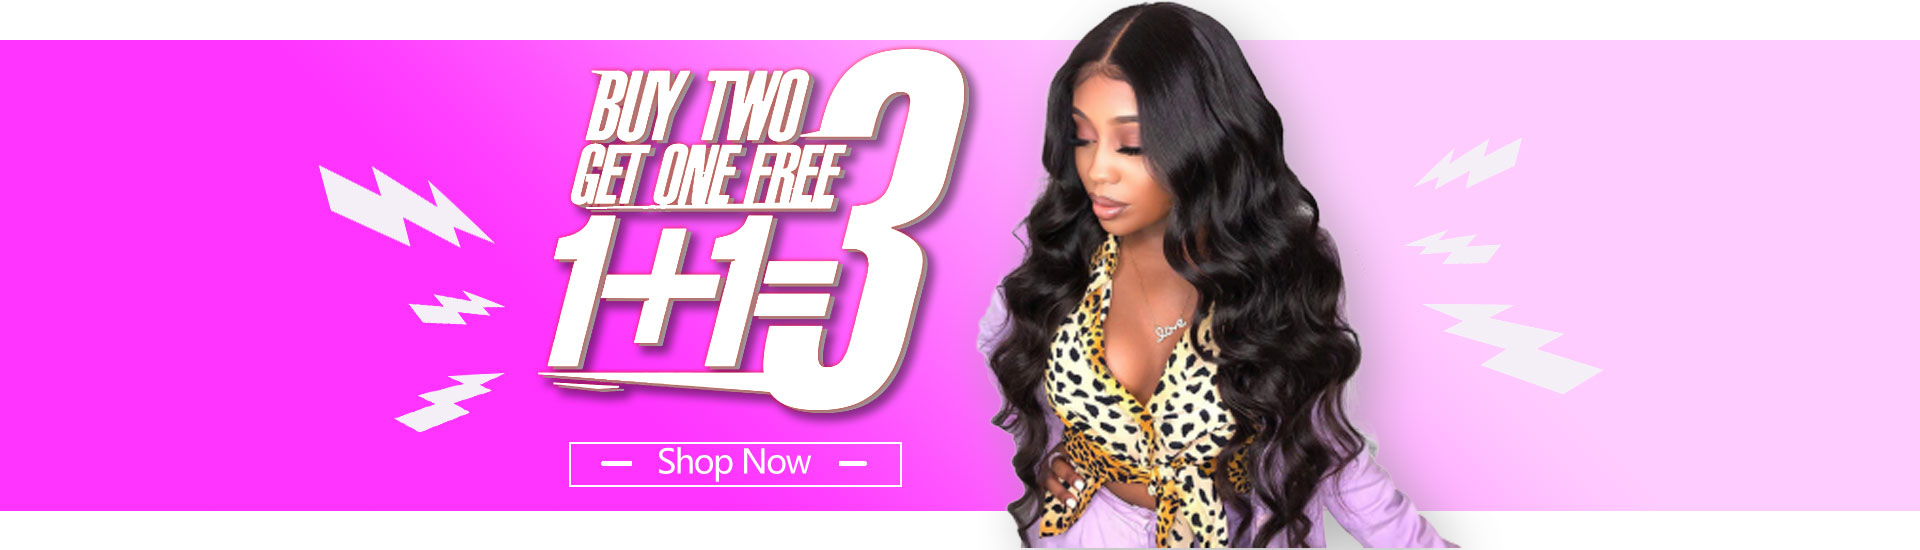 Lace Wig Merry Hair 15% Off Discount